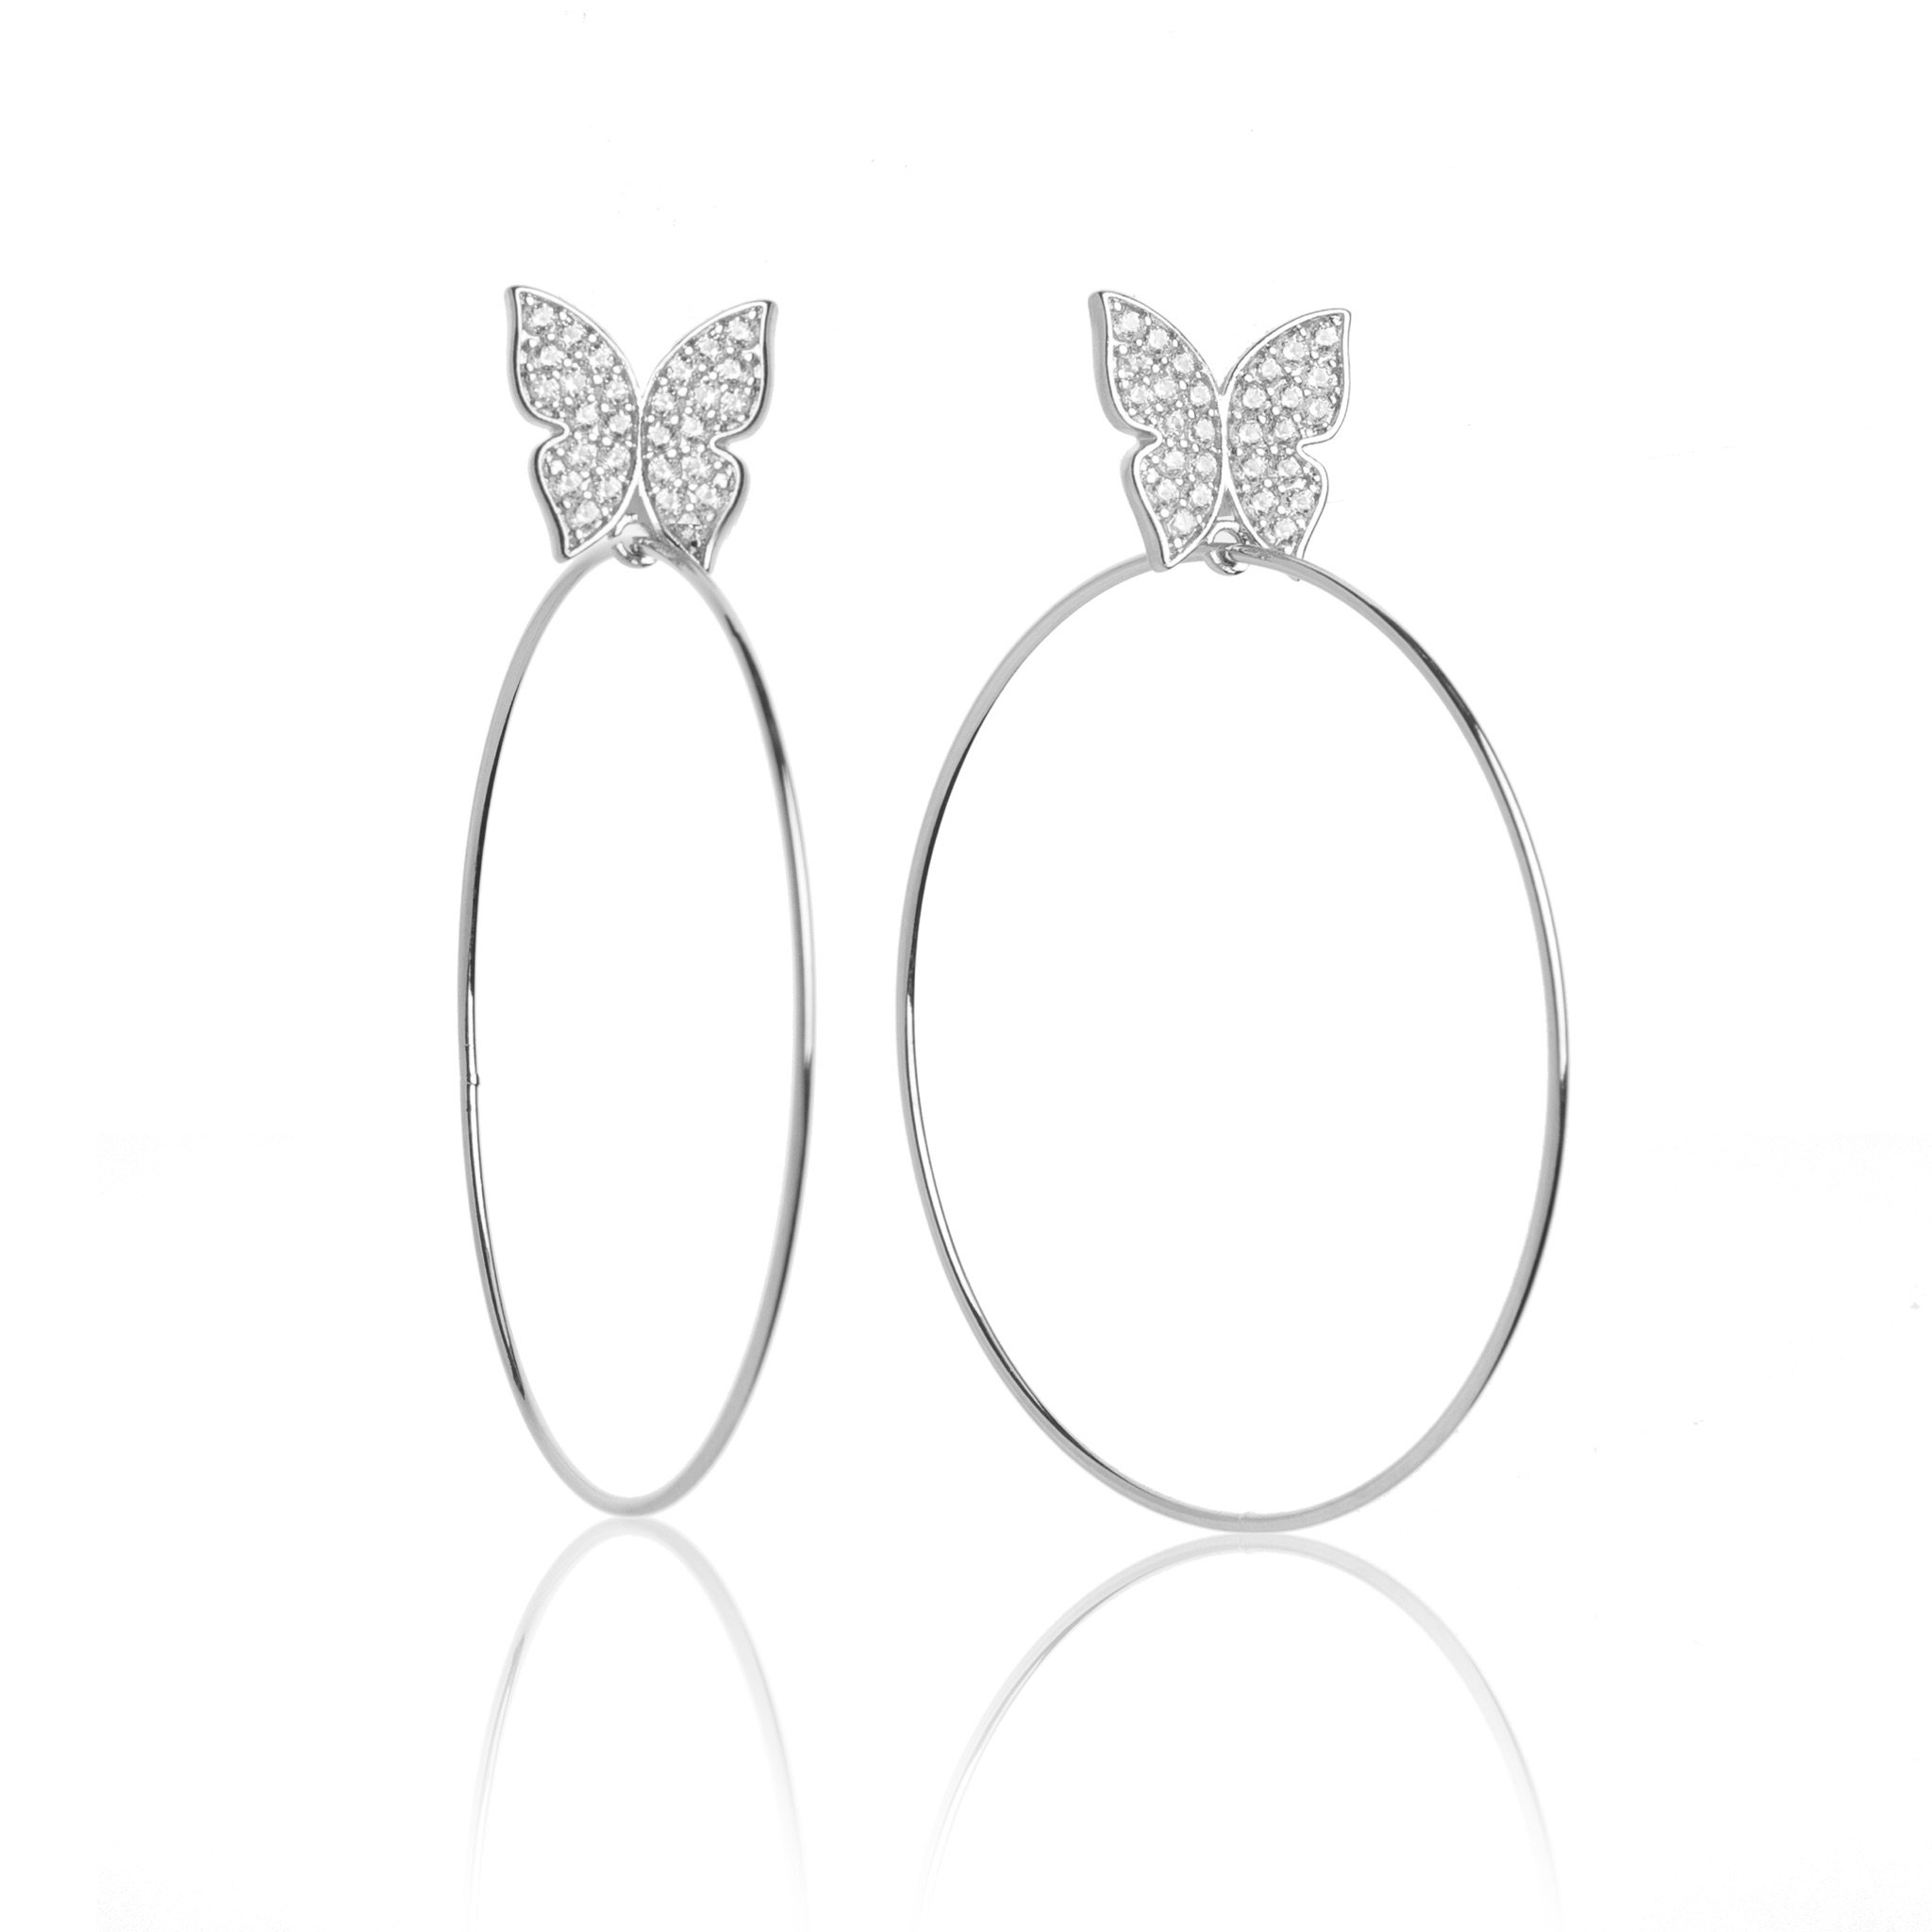 "Evelyn Signature 2"" & 4"" White Gold Hoop Earrings - Go to https://t.co/LHUWbOgl6K https://t.co/qicukxI6lZ"